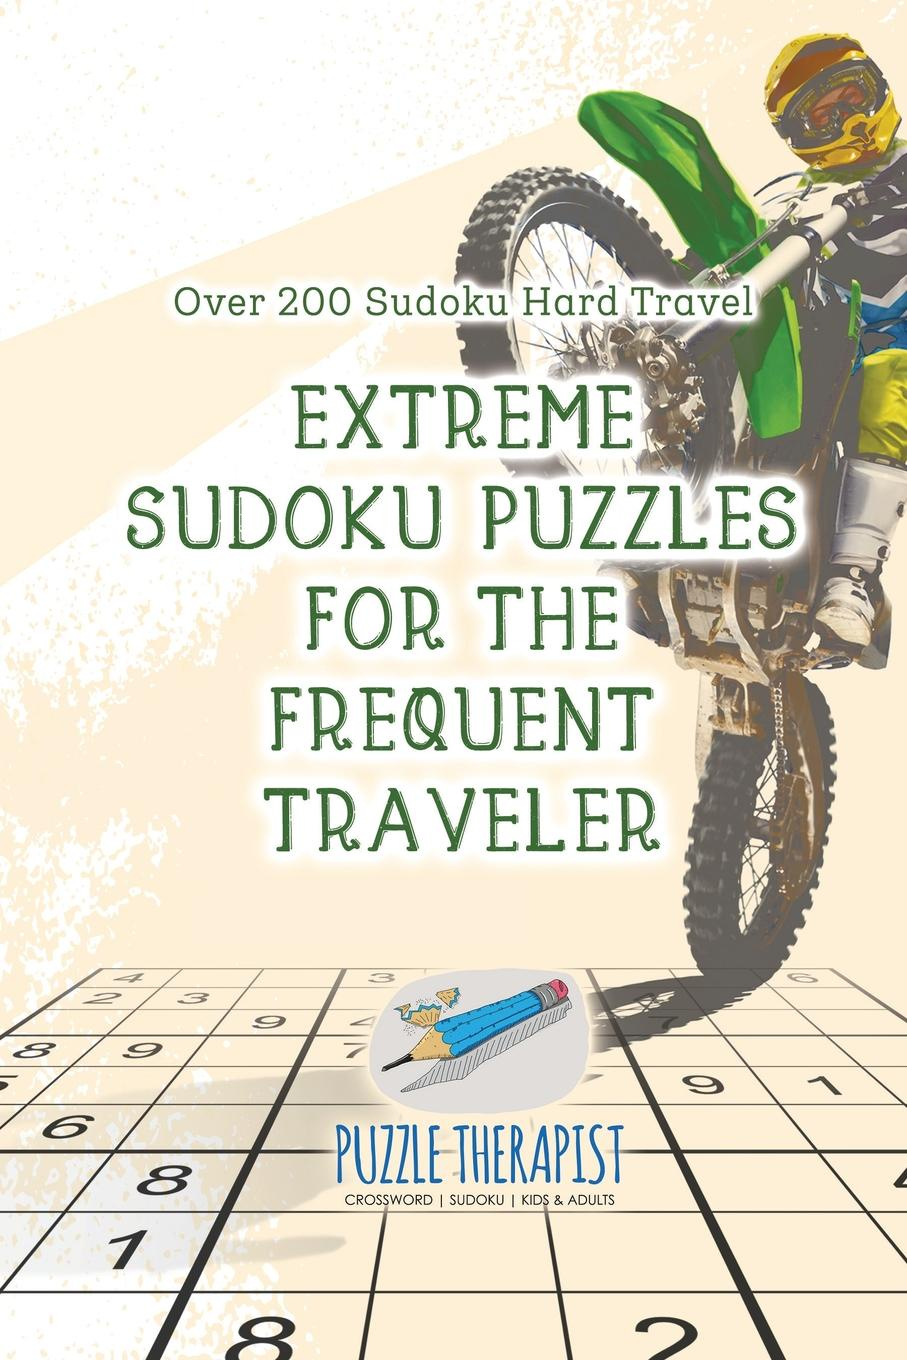 Puzzle Therapist Extreme Sudoku Puzzles for the Frequent Traveler . Over 200 Sudoku Hard Travel puzzle therapist one a day sudoku for the utterly obsessed large print puzzles for adults